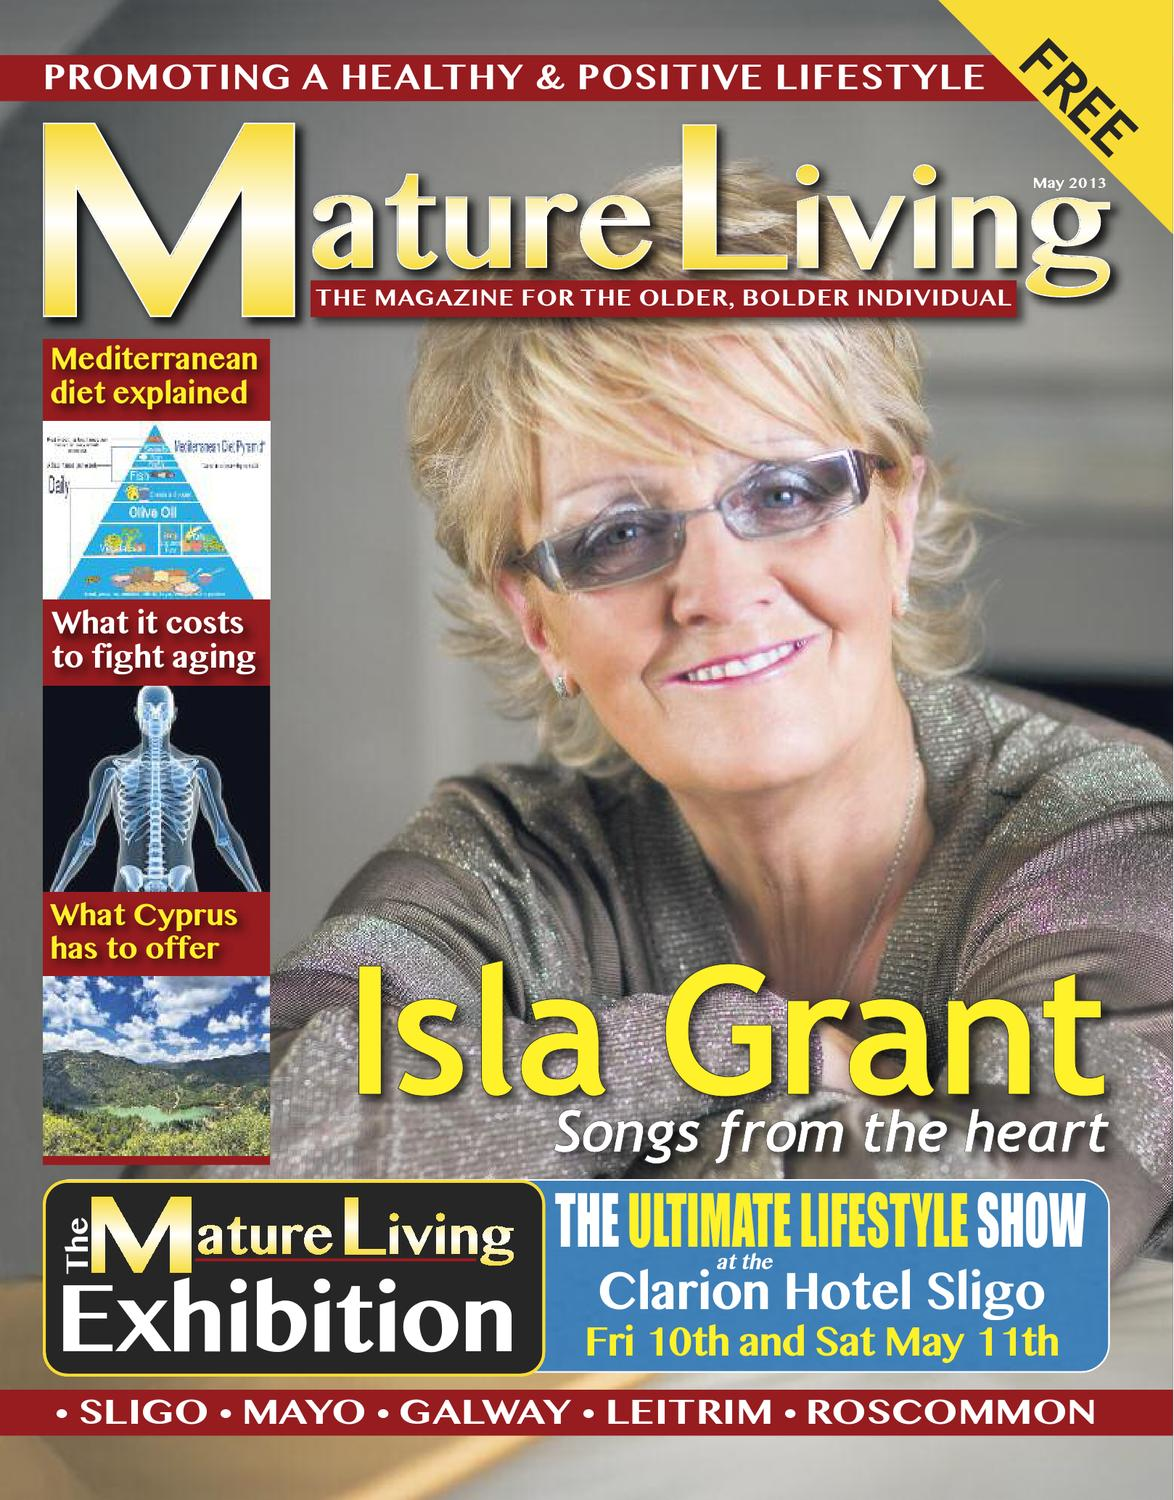 91df9d647dc Mature Living May 2013 - Expo Edition by northwest express - issuu